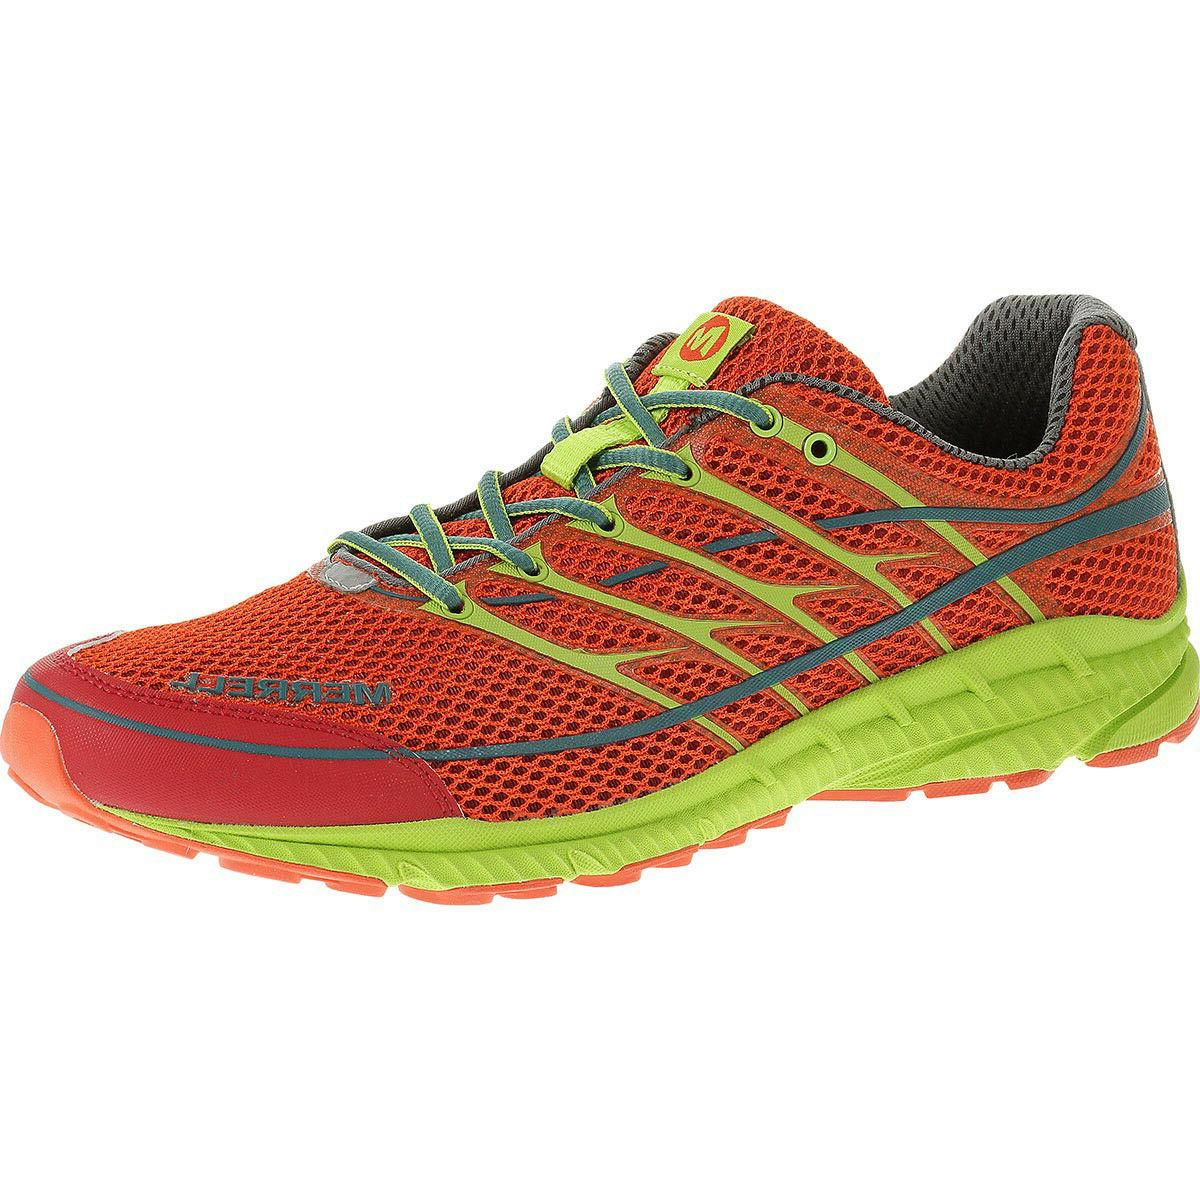 Merrell Men's Move Trail Shoe